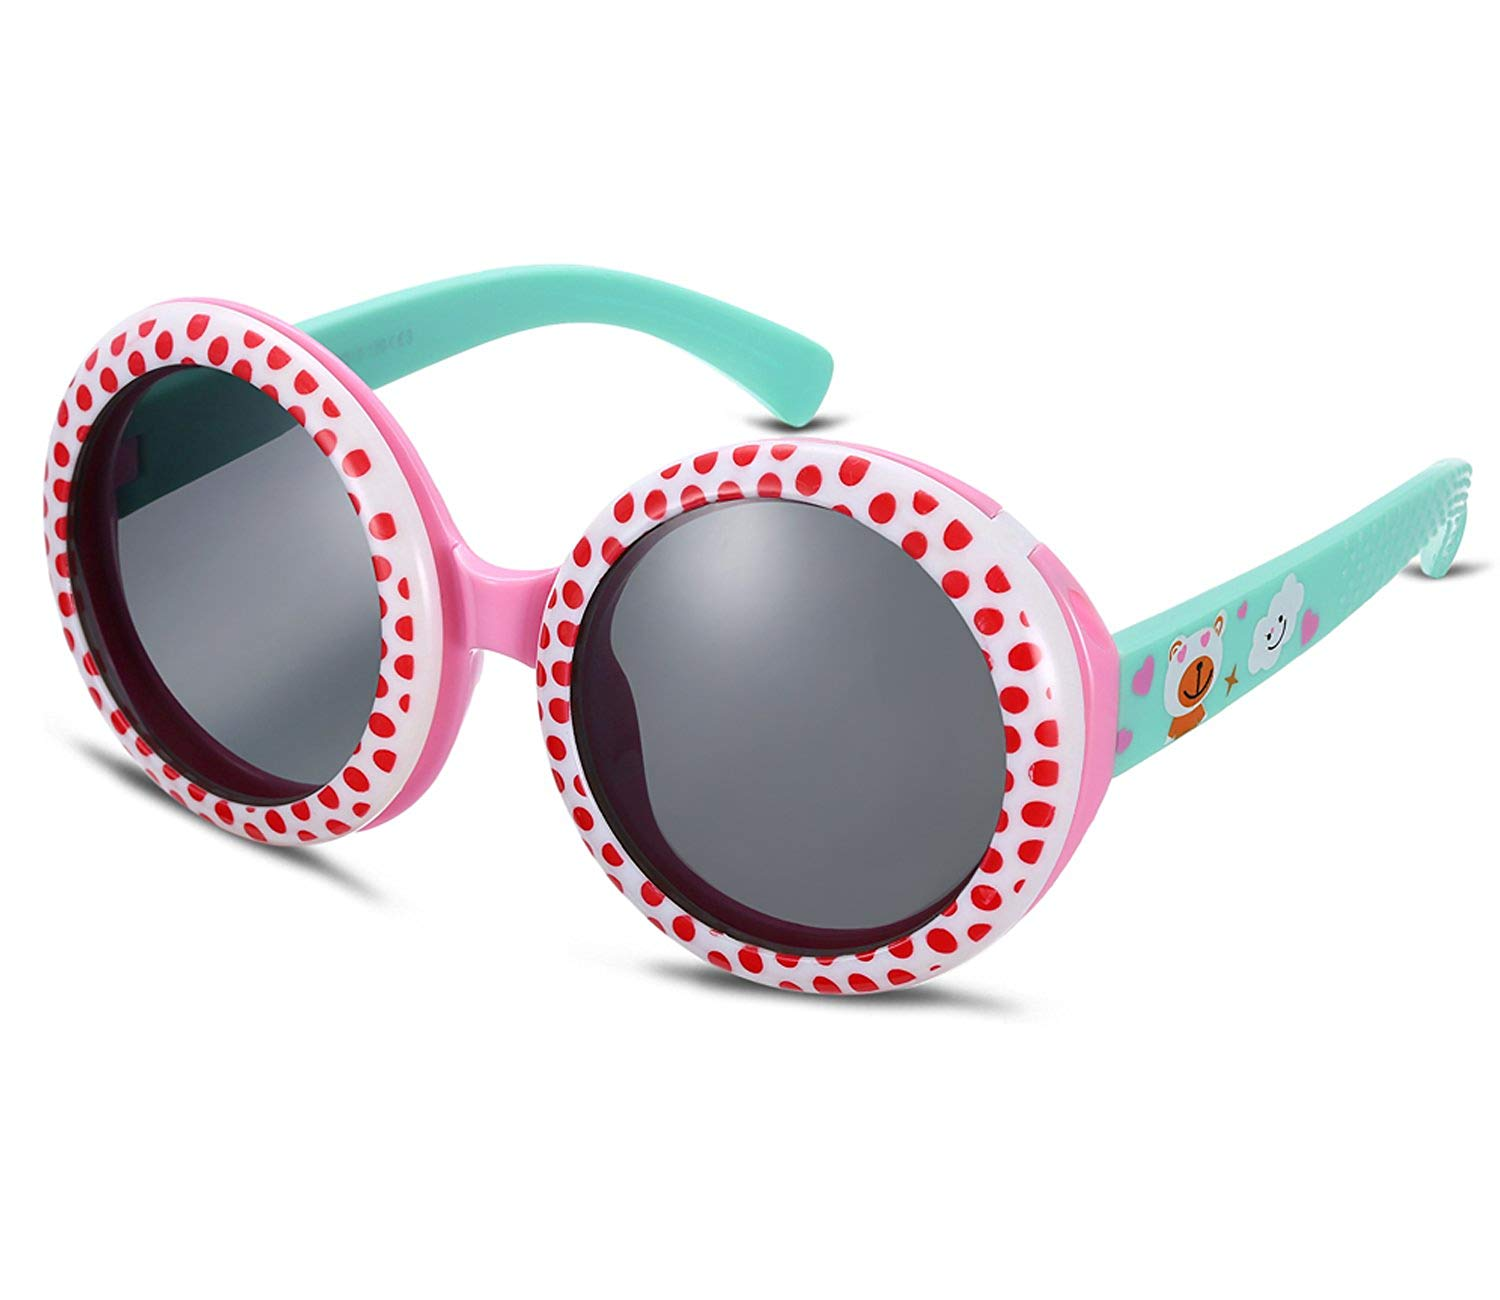 13bab252585 Get Quotations · Kids Renovate Classic Silicone Sunglasses Cute Retro Sun  Glasses for Baby and Children